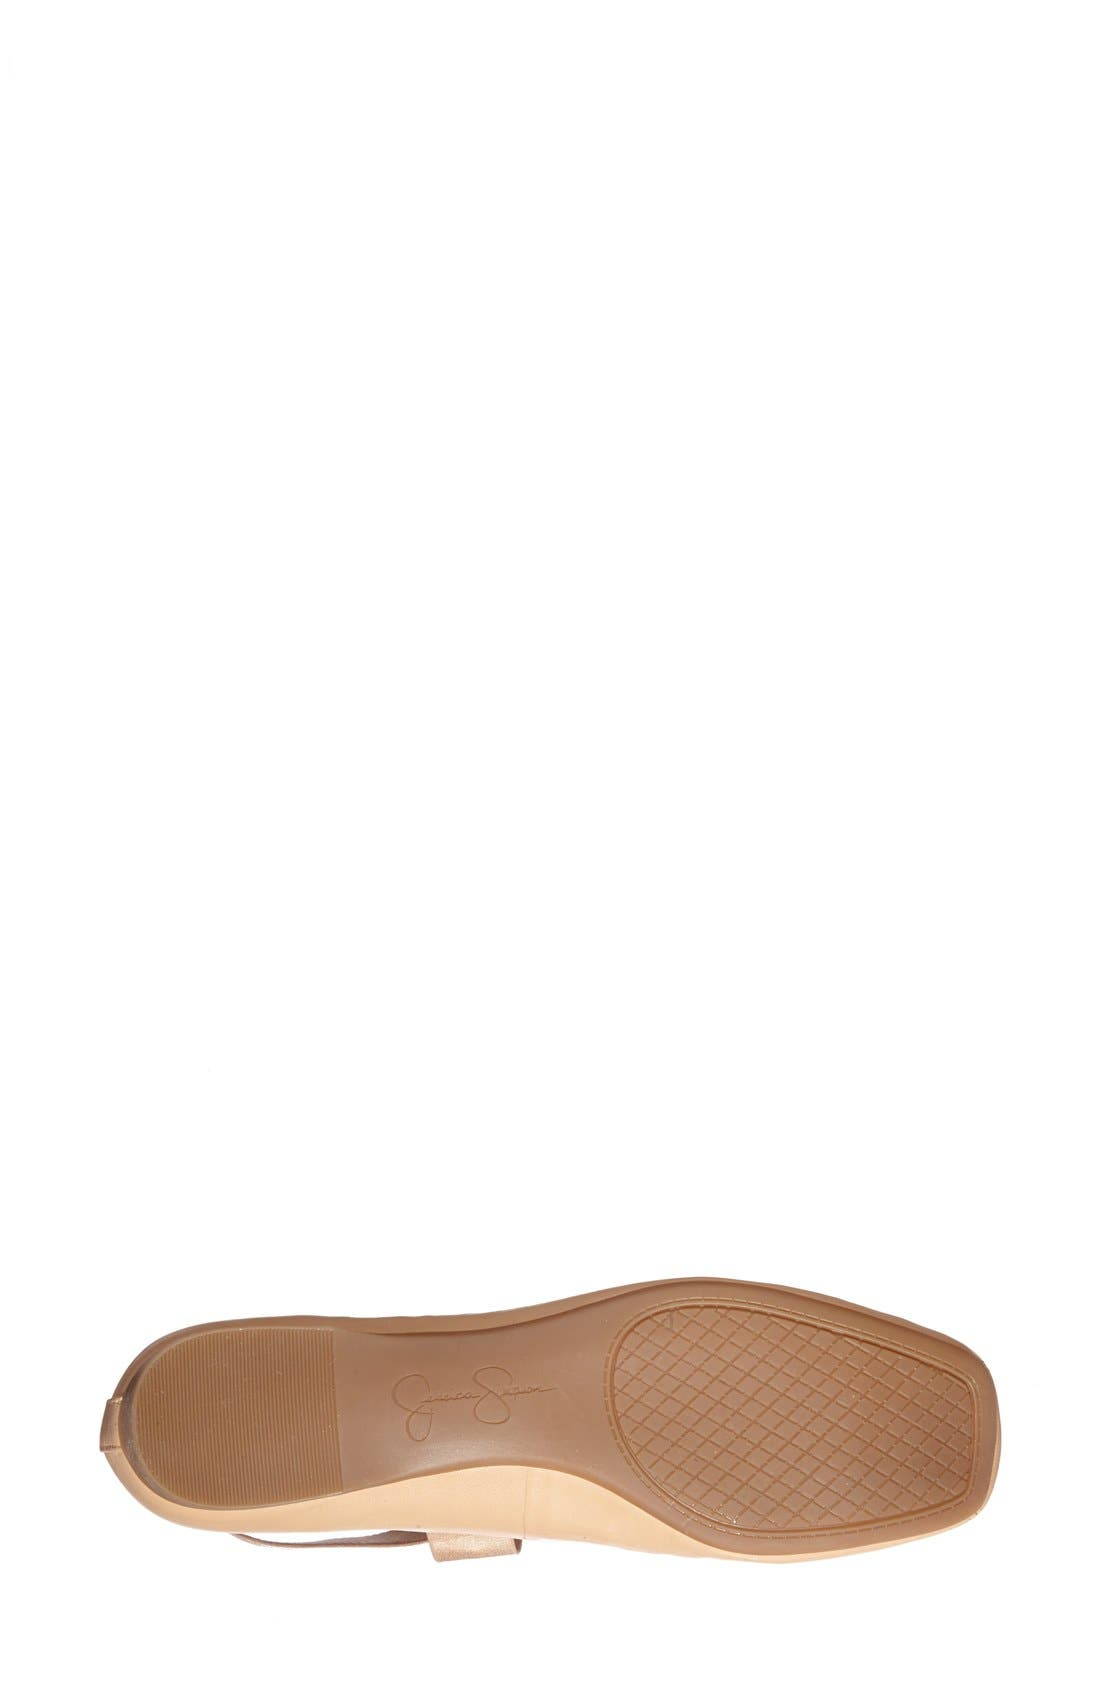 Alternate Image 4  - Jessica Simpson 'Mandalaye' Leather Flat